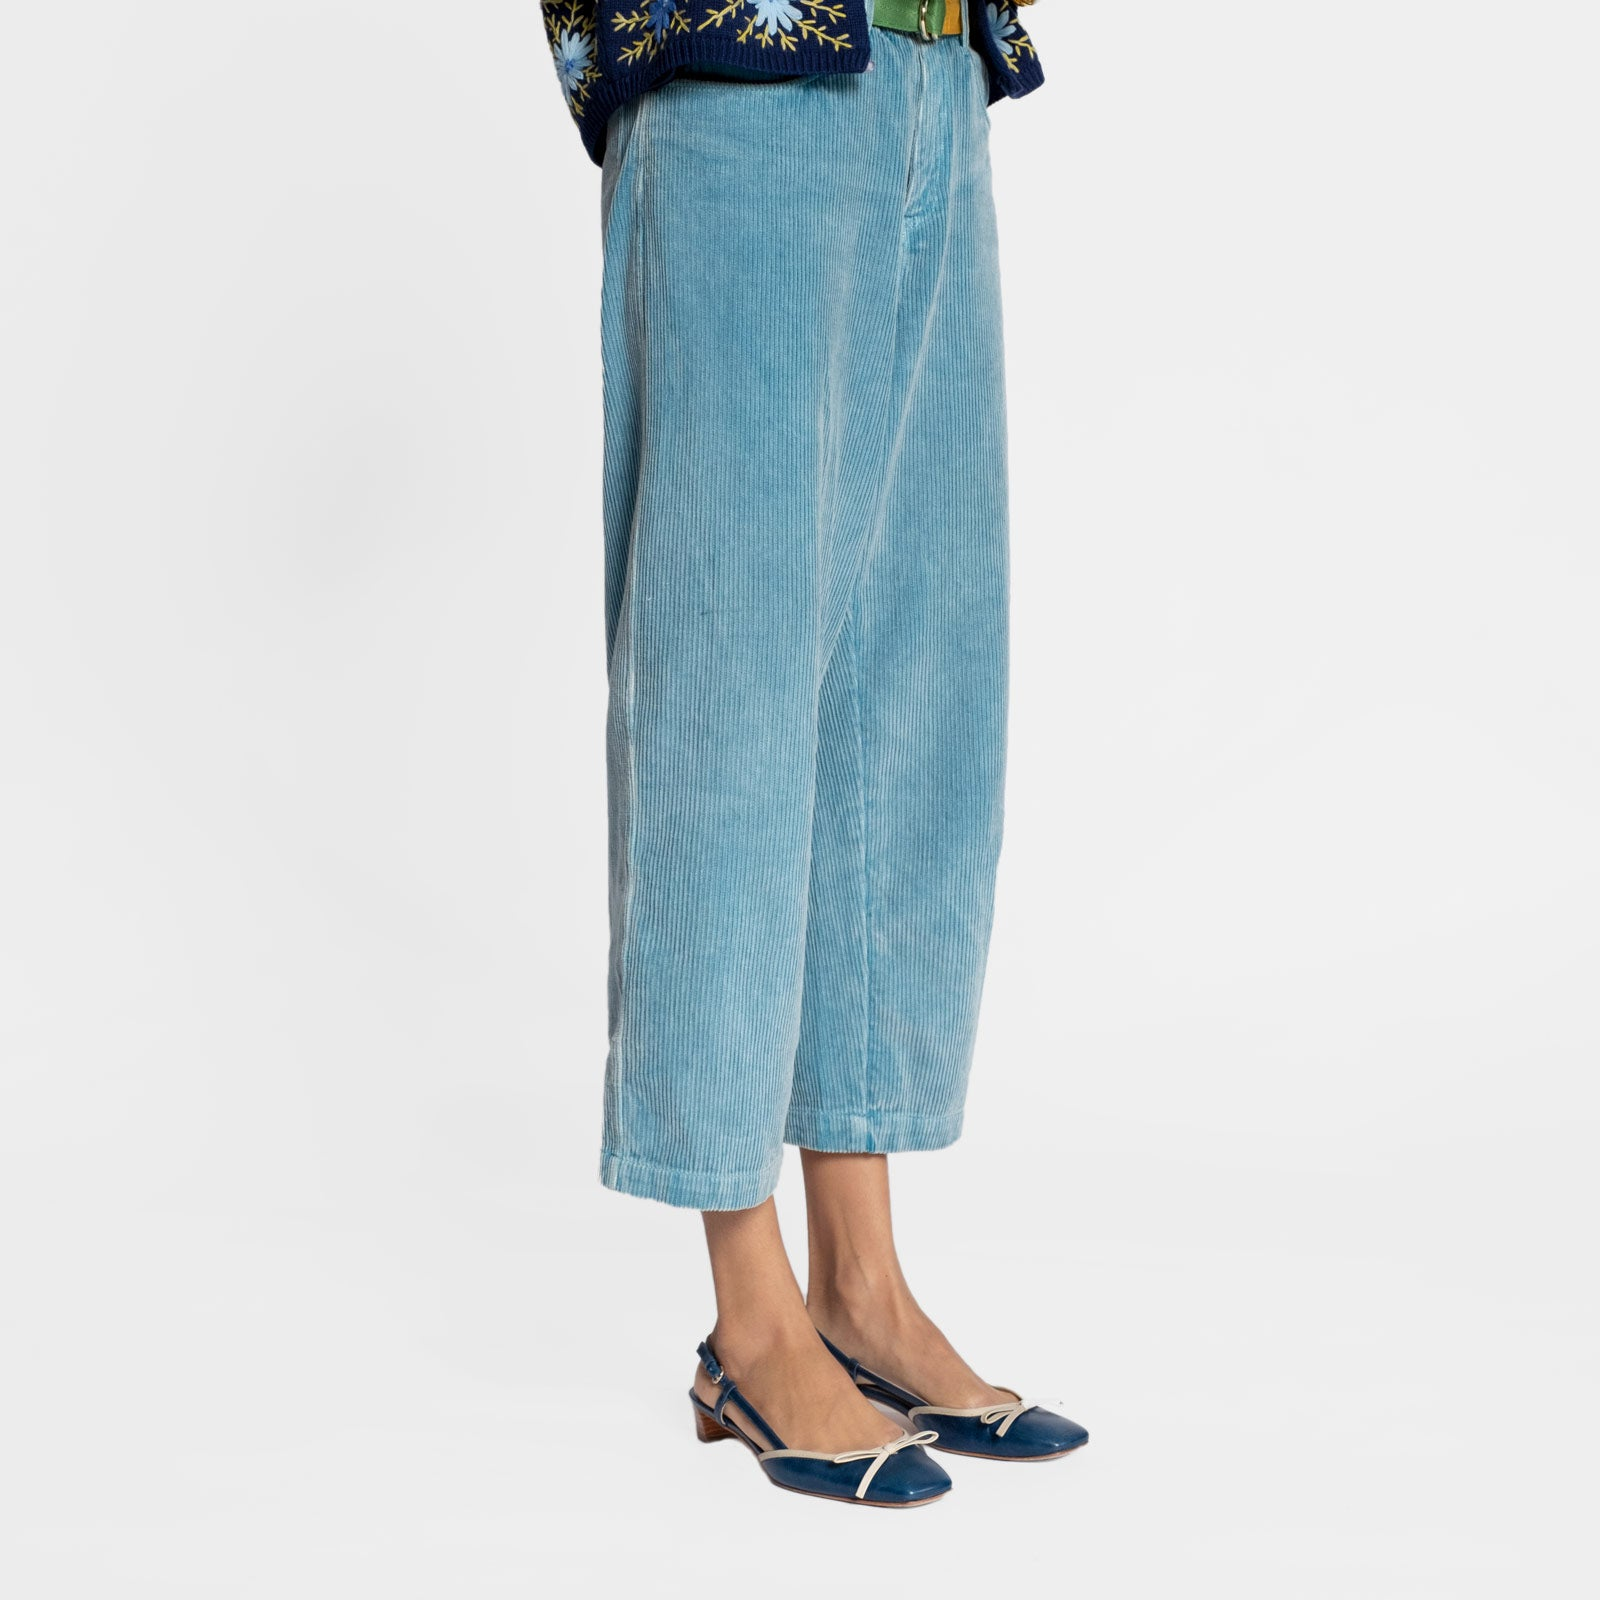 Jane Corduroy Pant Light Blue